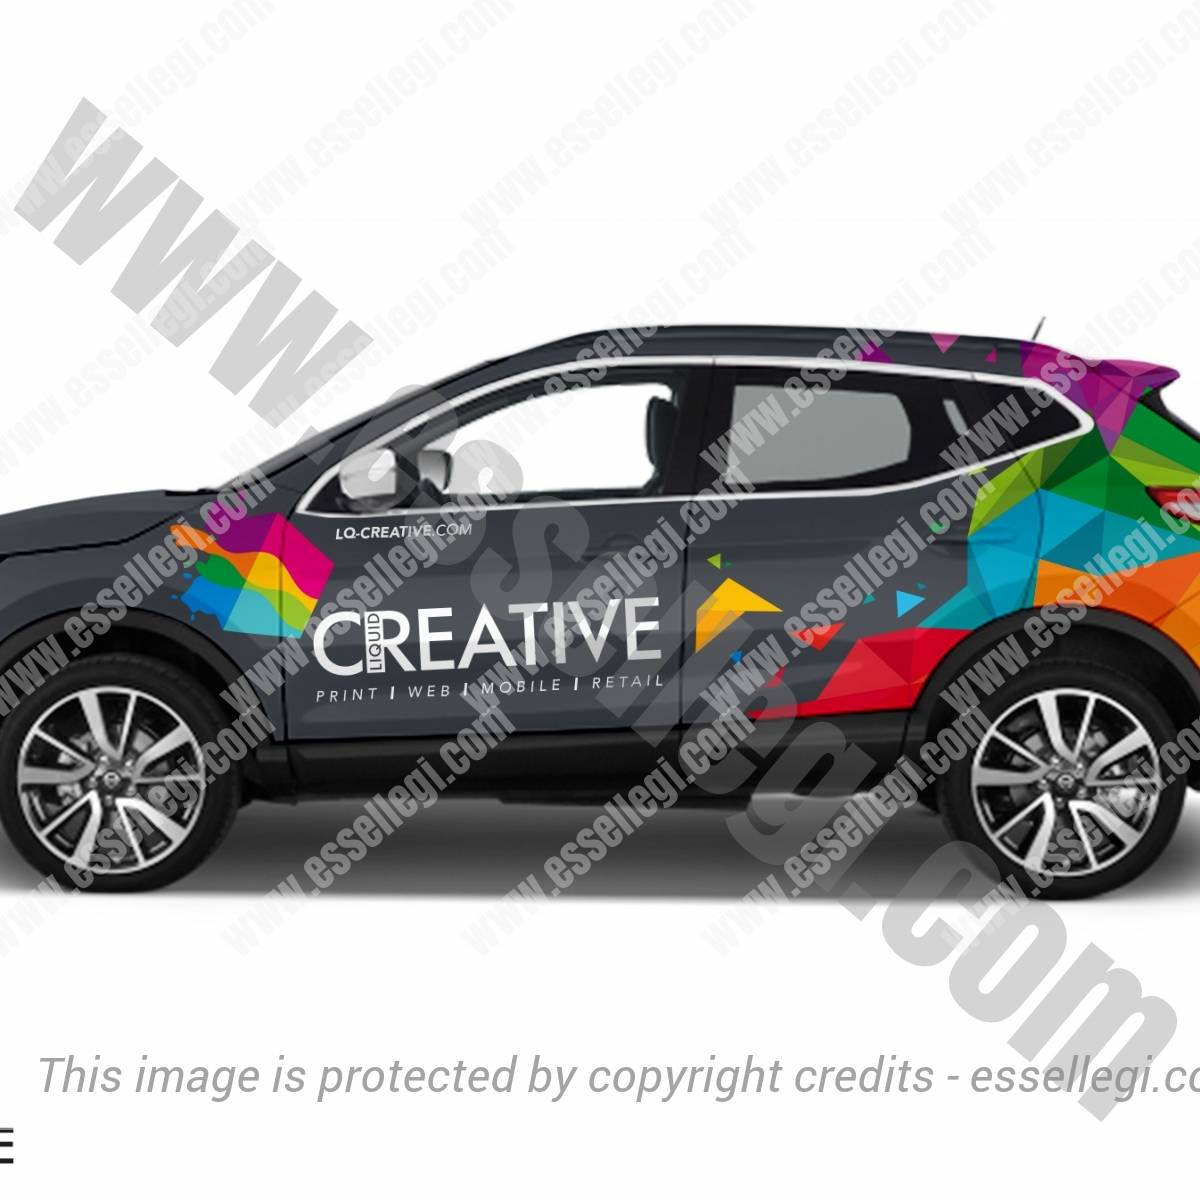 LIQUID CREATIVE | CAR WRAP DESIGN 🇬🇧